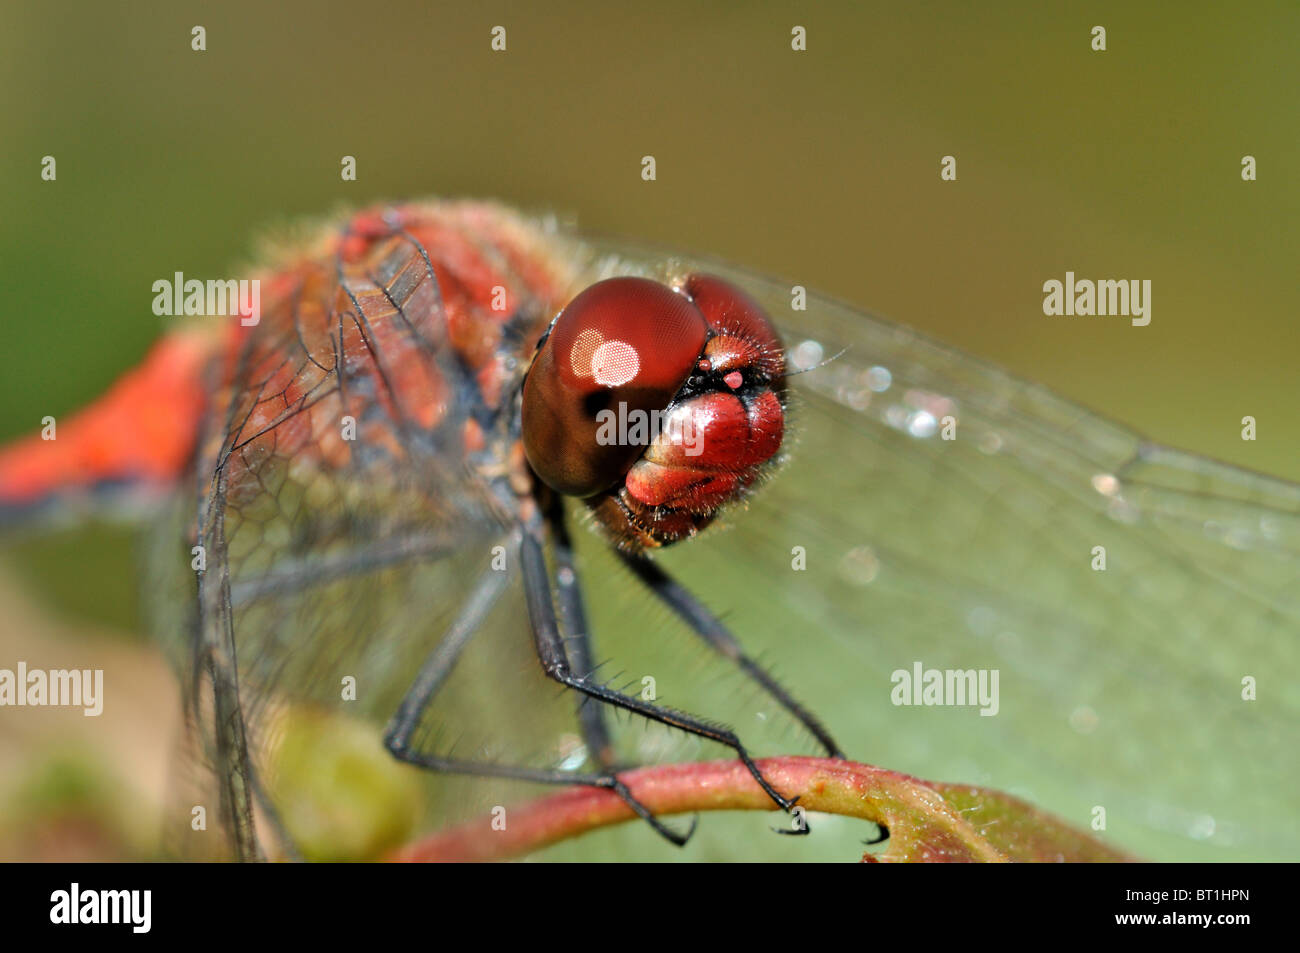 Big red face with red eyes of red dragonfly Stock Photo